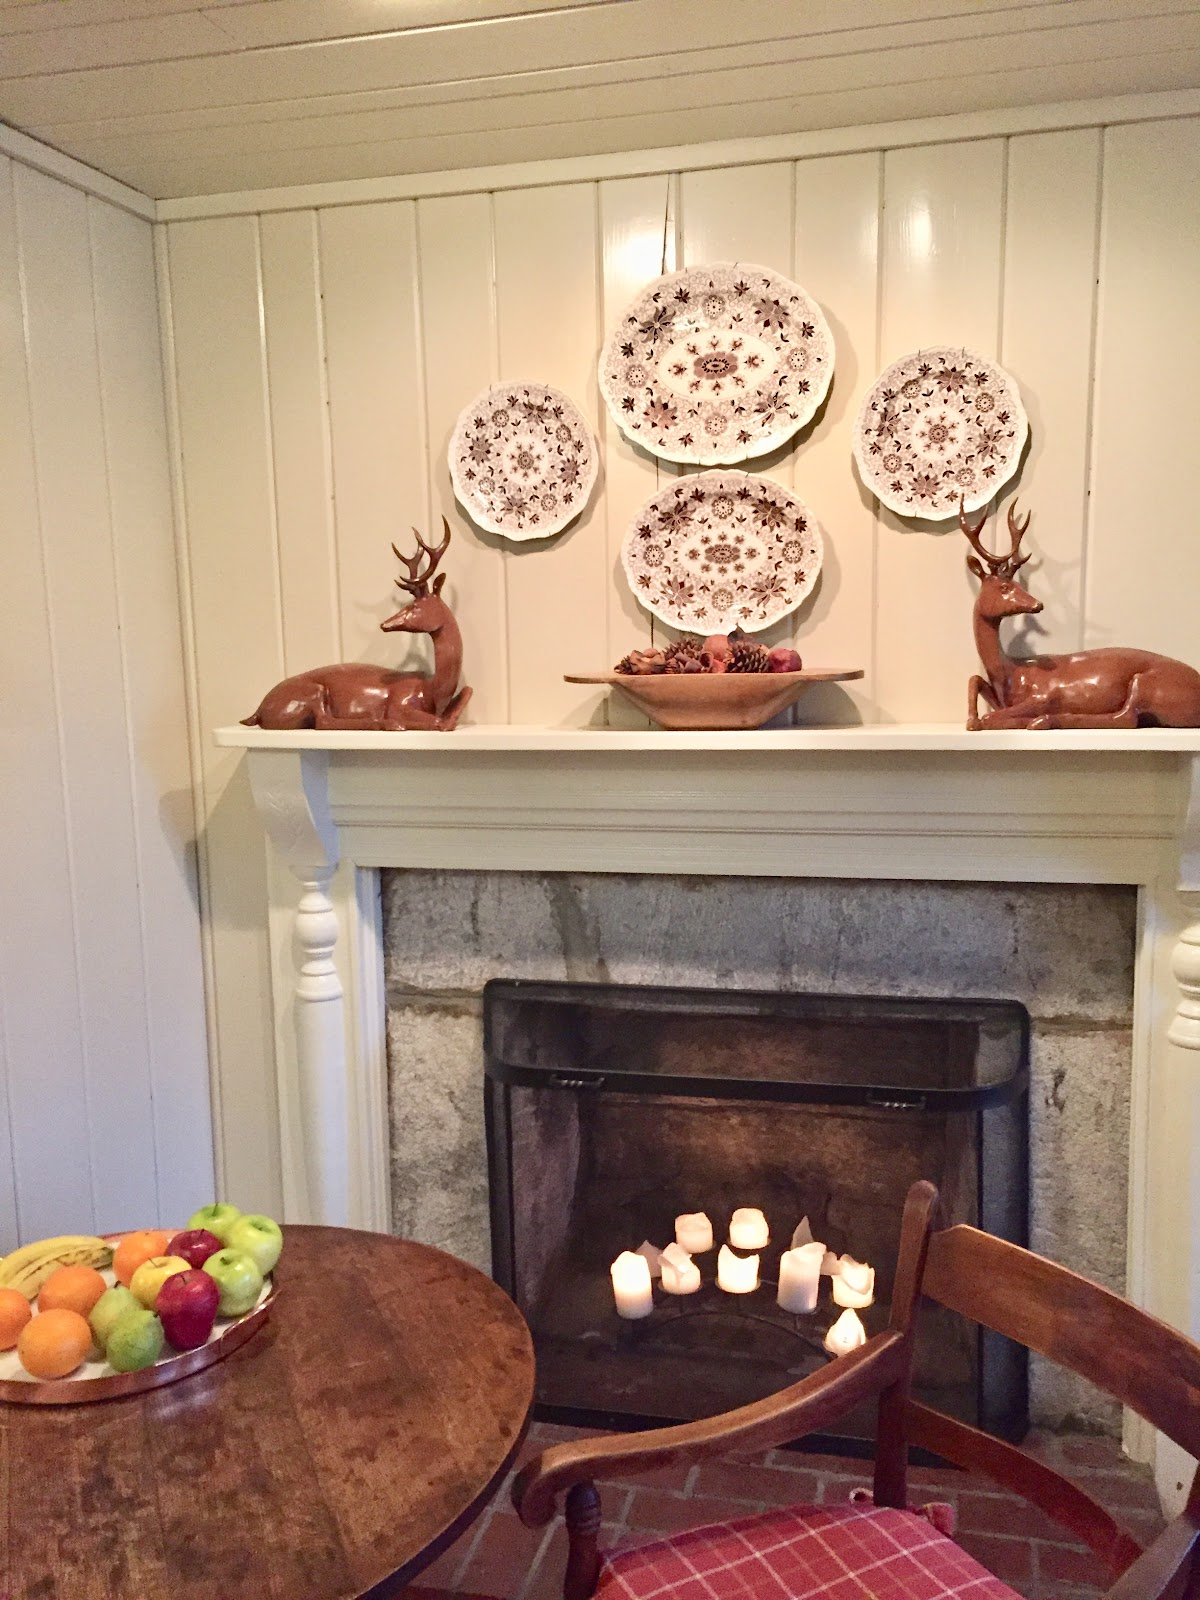 Old Fireplace With White Mantel